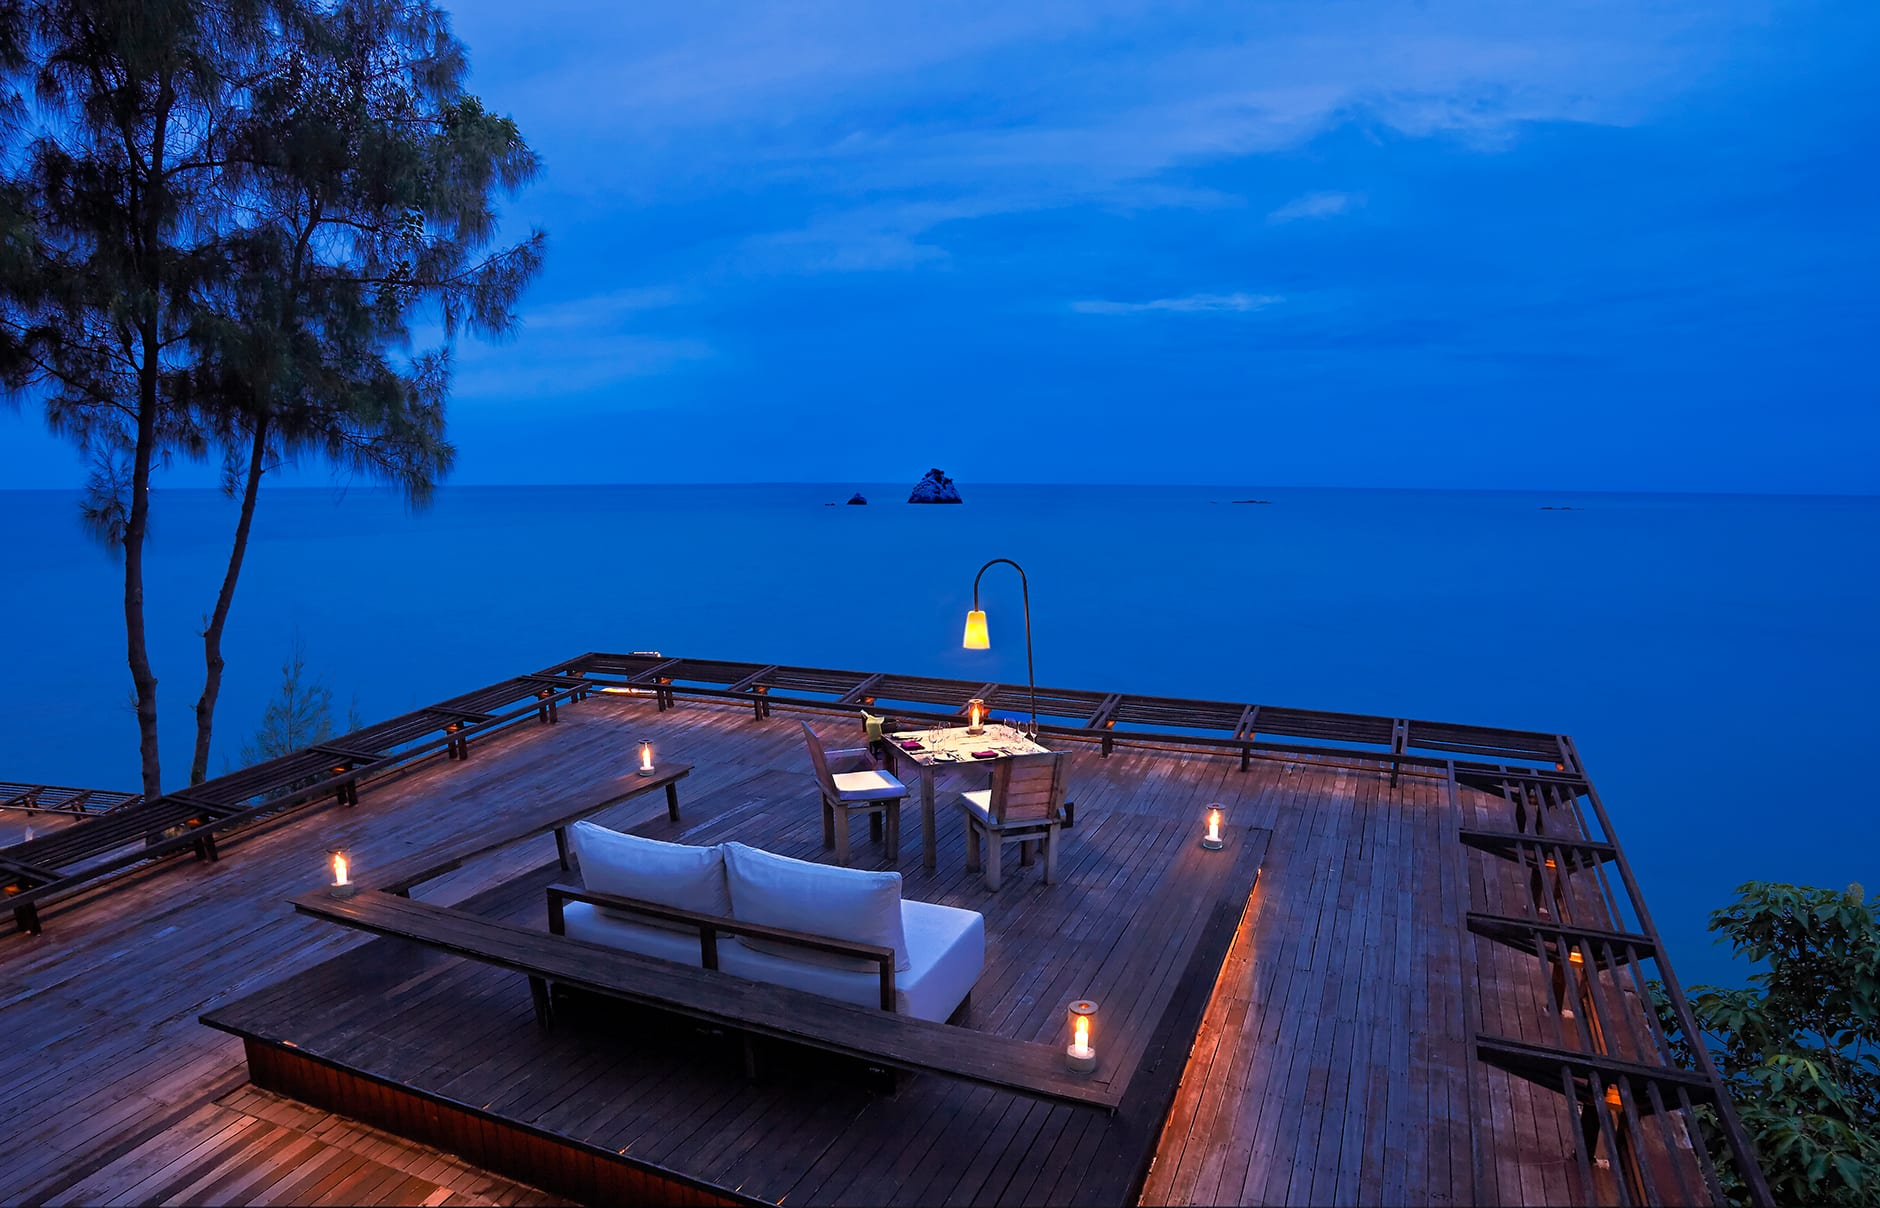 Dining on the Rocks. Six Senses Samui, Thailand. © Six Senses Resorts & Spas